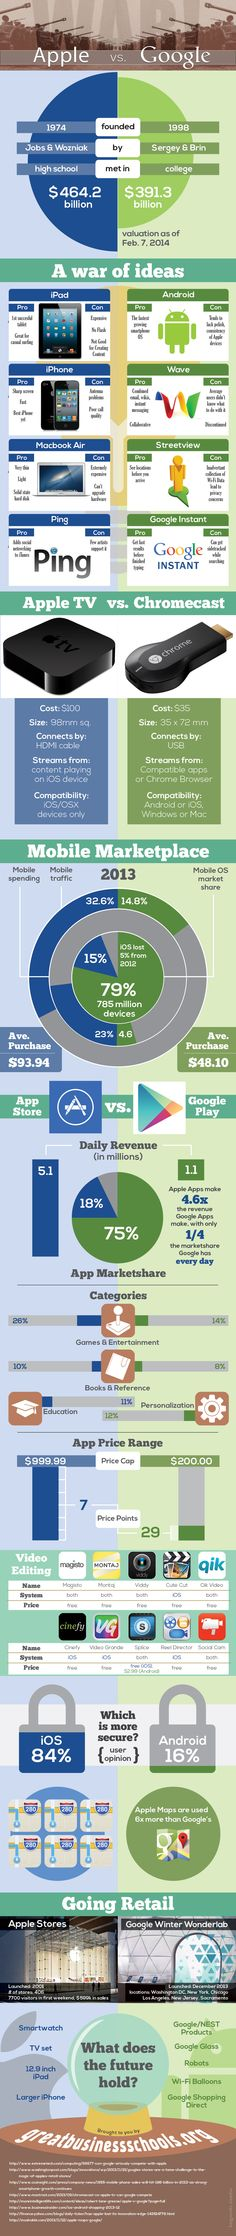 Google vs Apple - A Great #Infographic sharing clear difference between two tech giants.